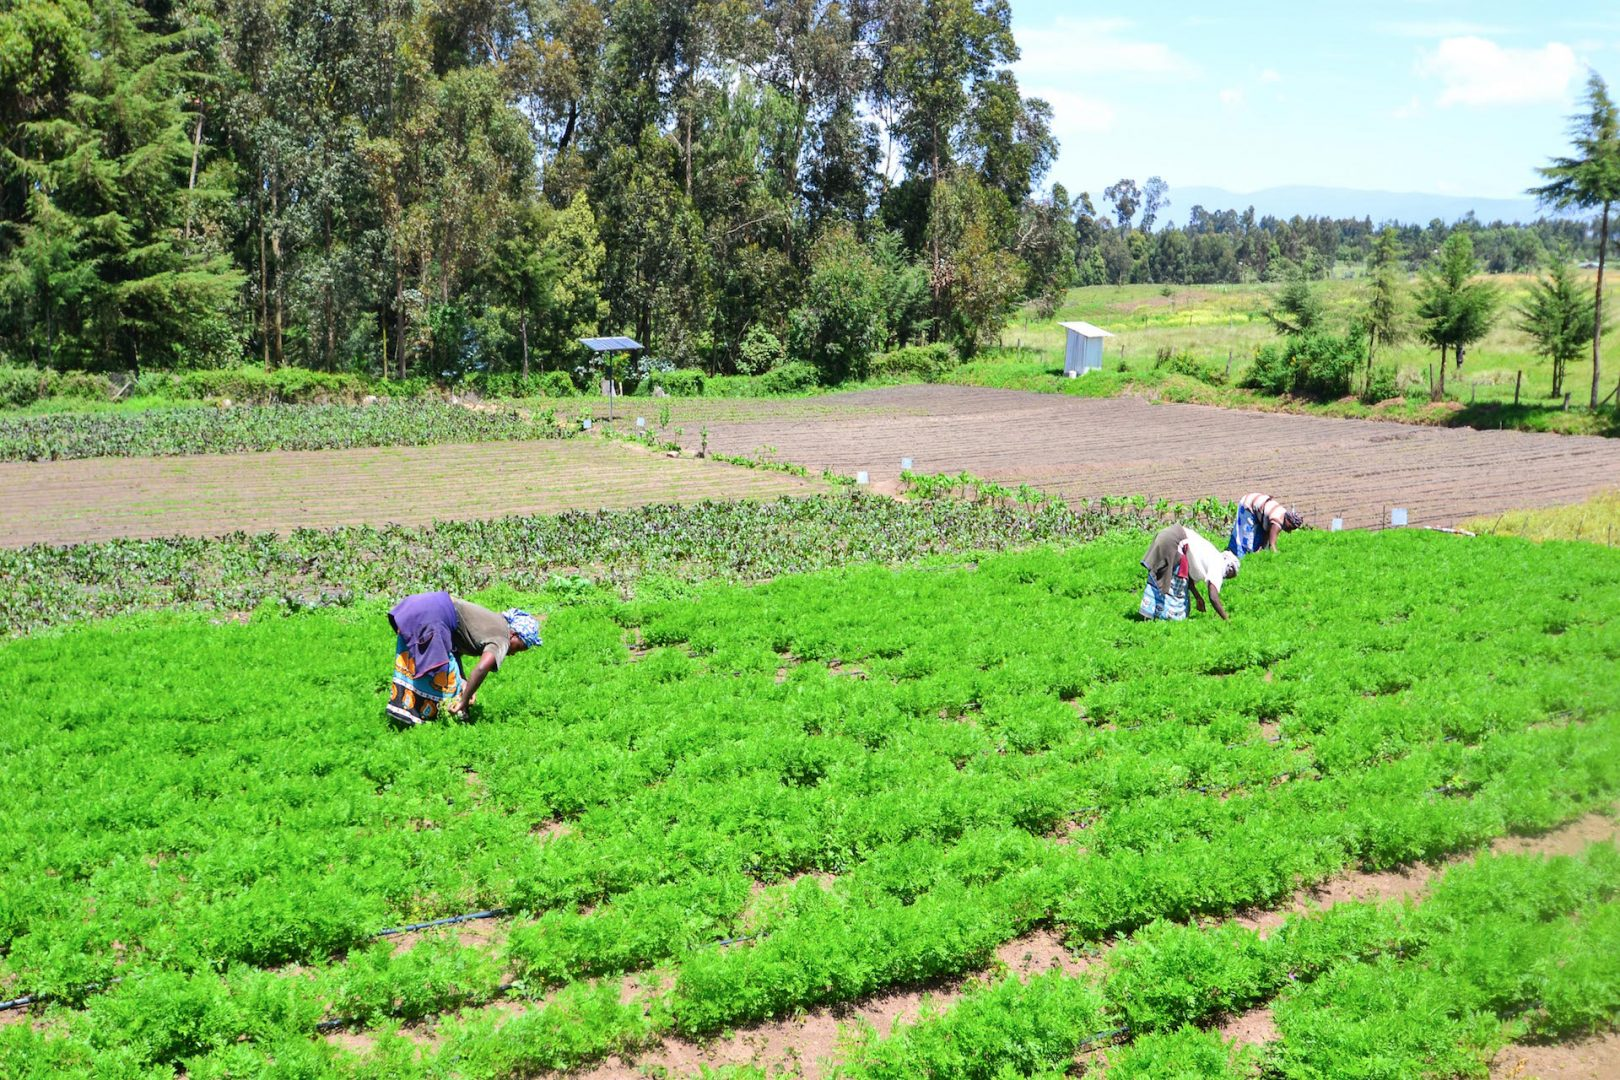 Kenyan farmers tending to their crops powered by solar panels